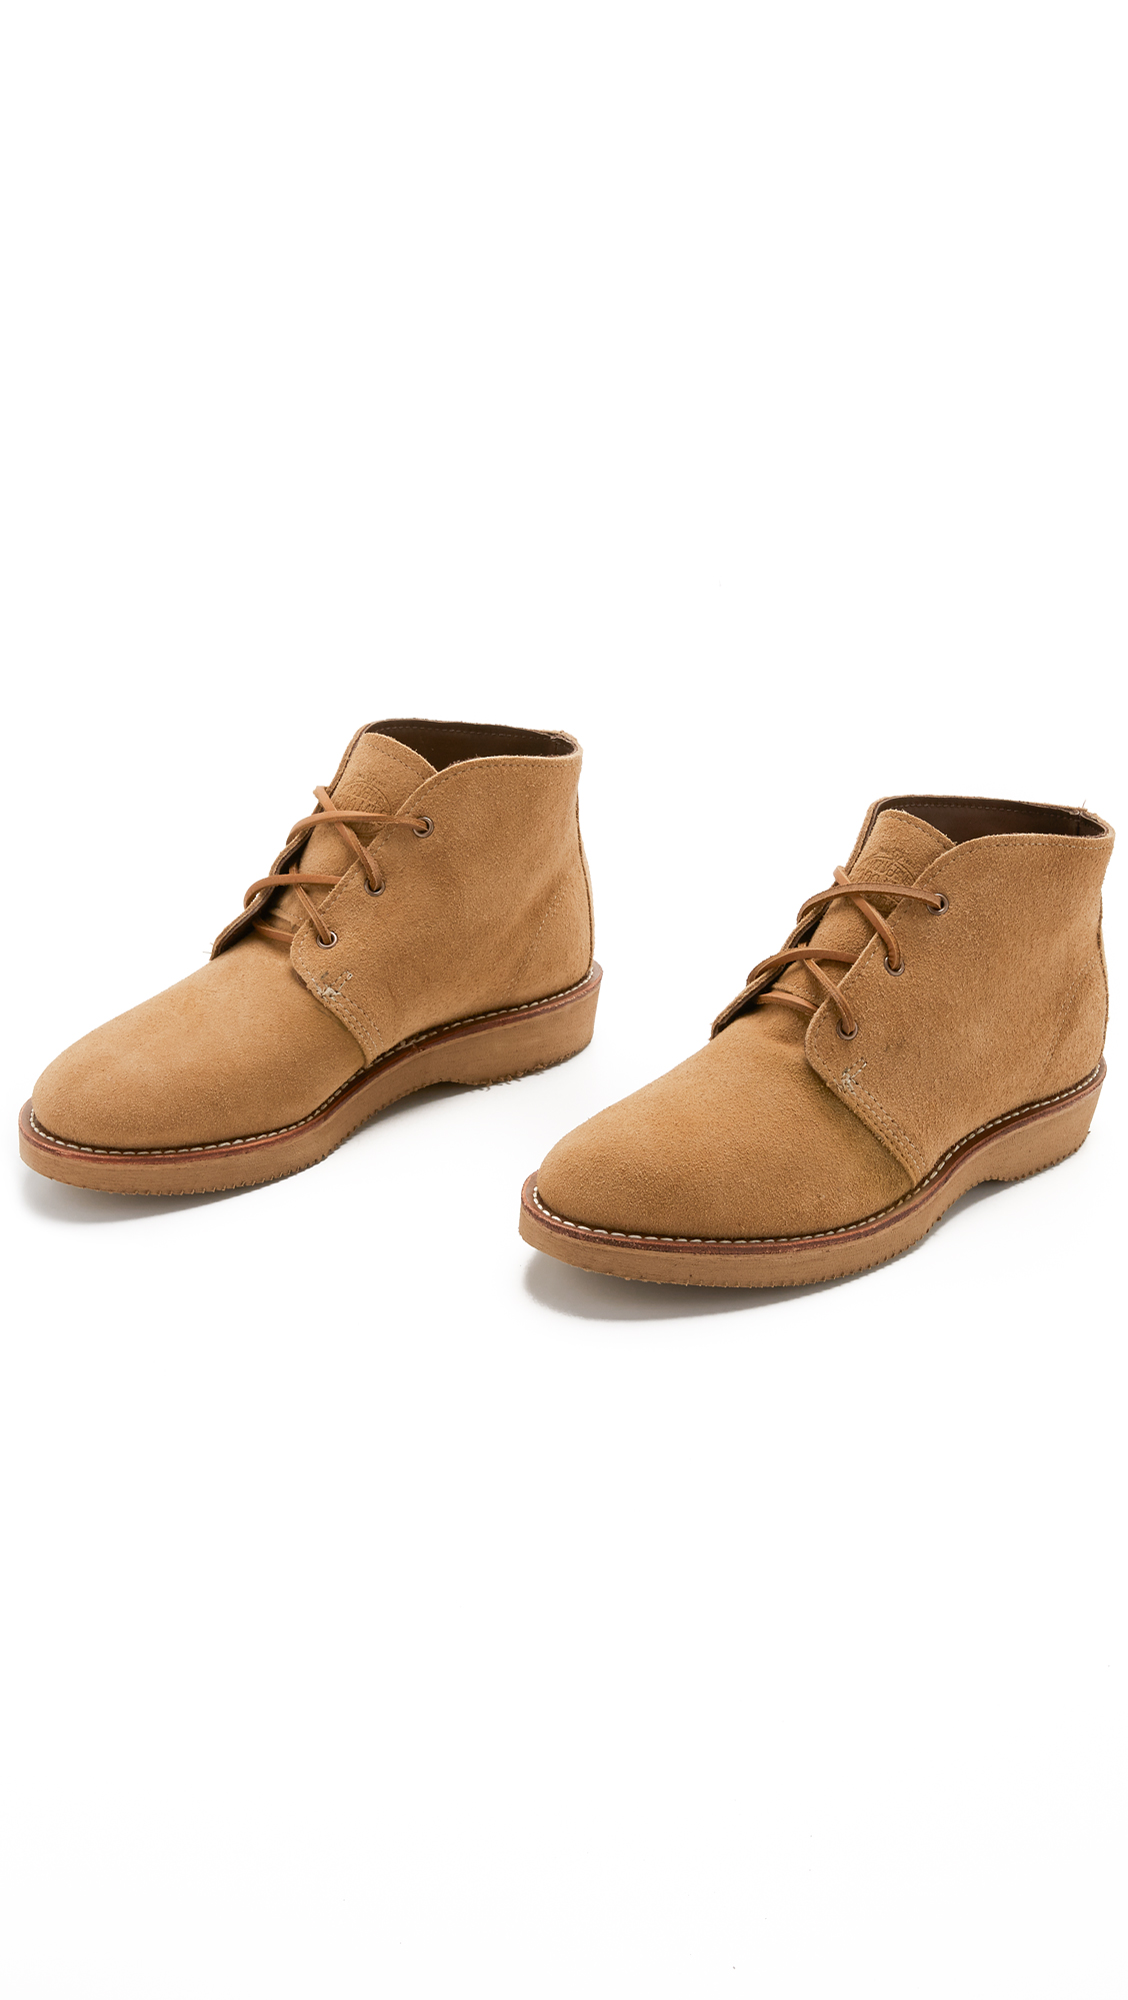 fb57d3d87ca Wolverine 1000 Mile Palmer Suede Chukka Boots | EAST DANE